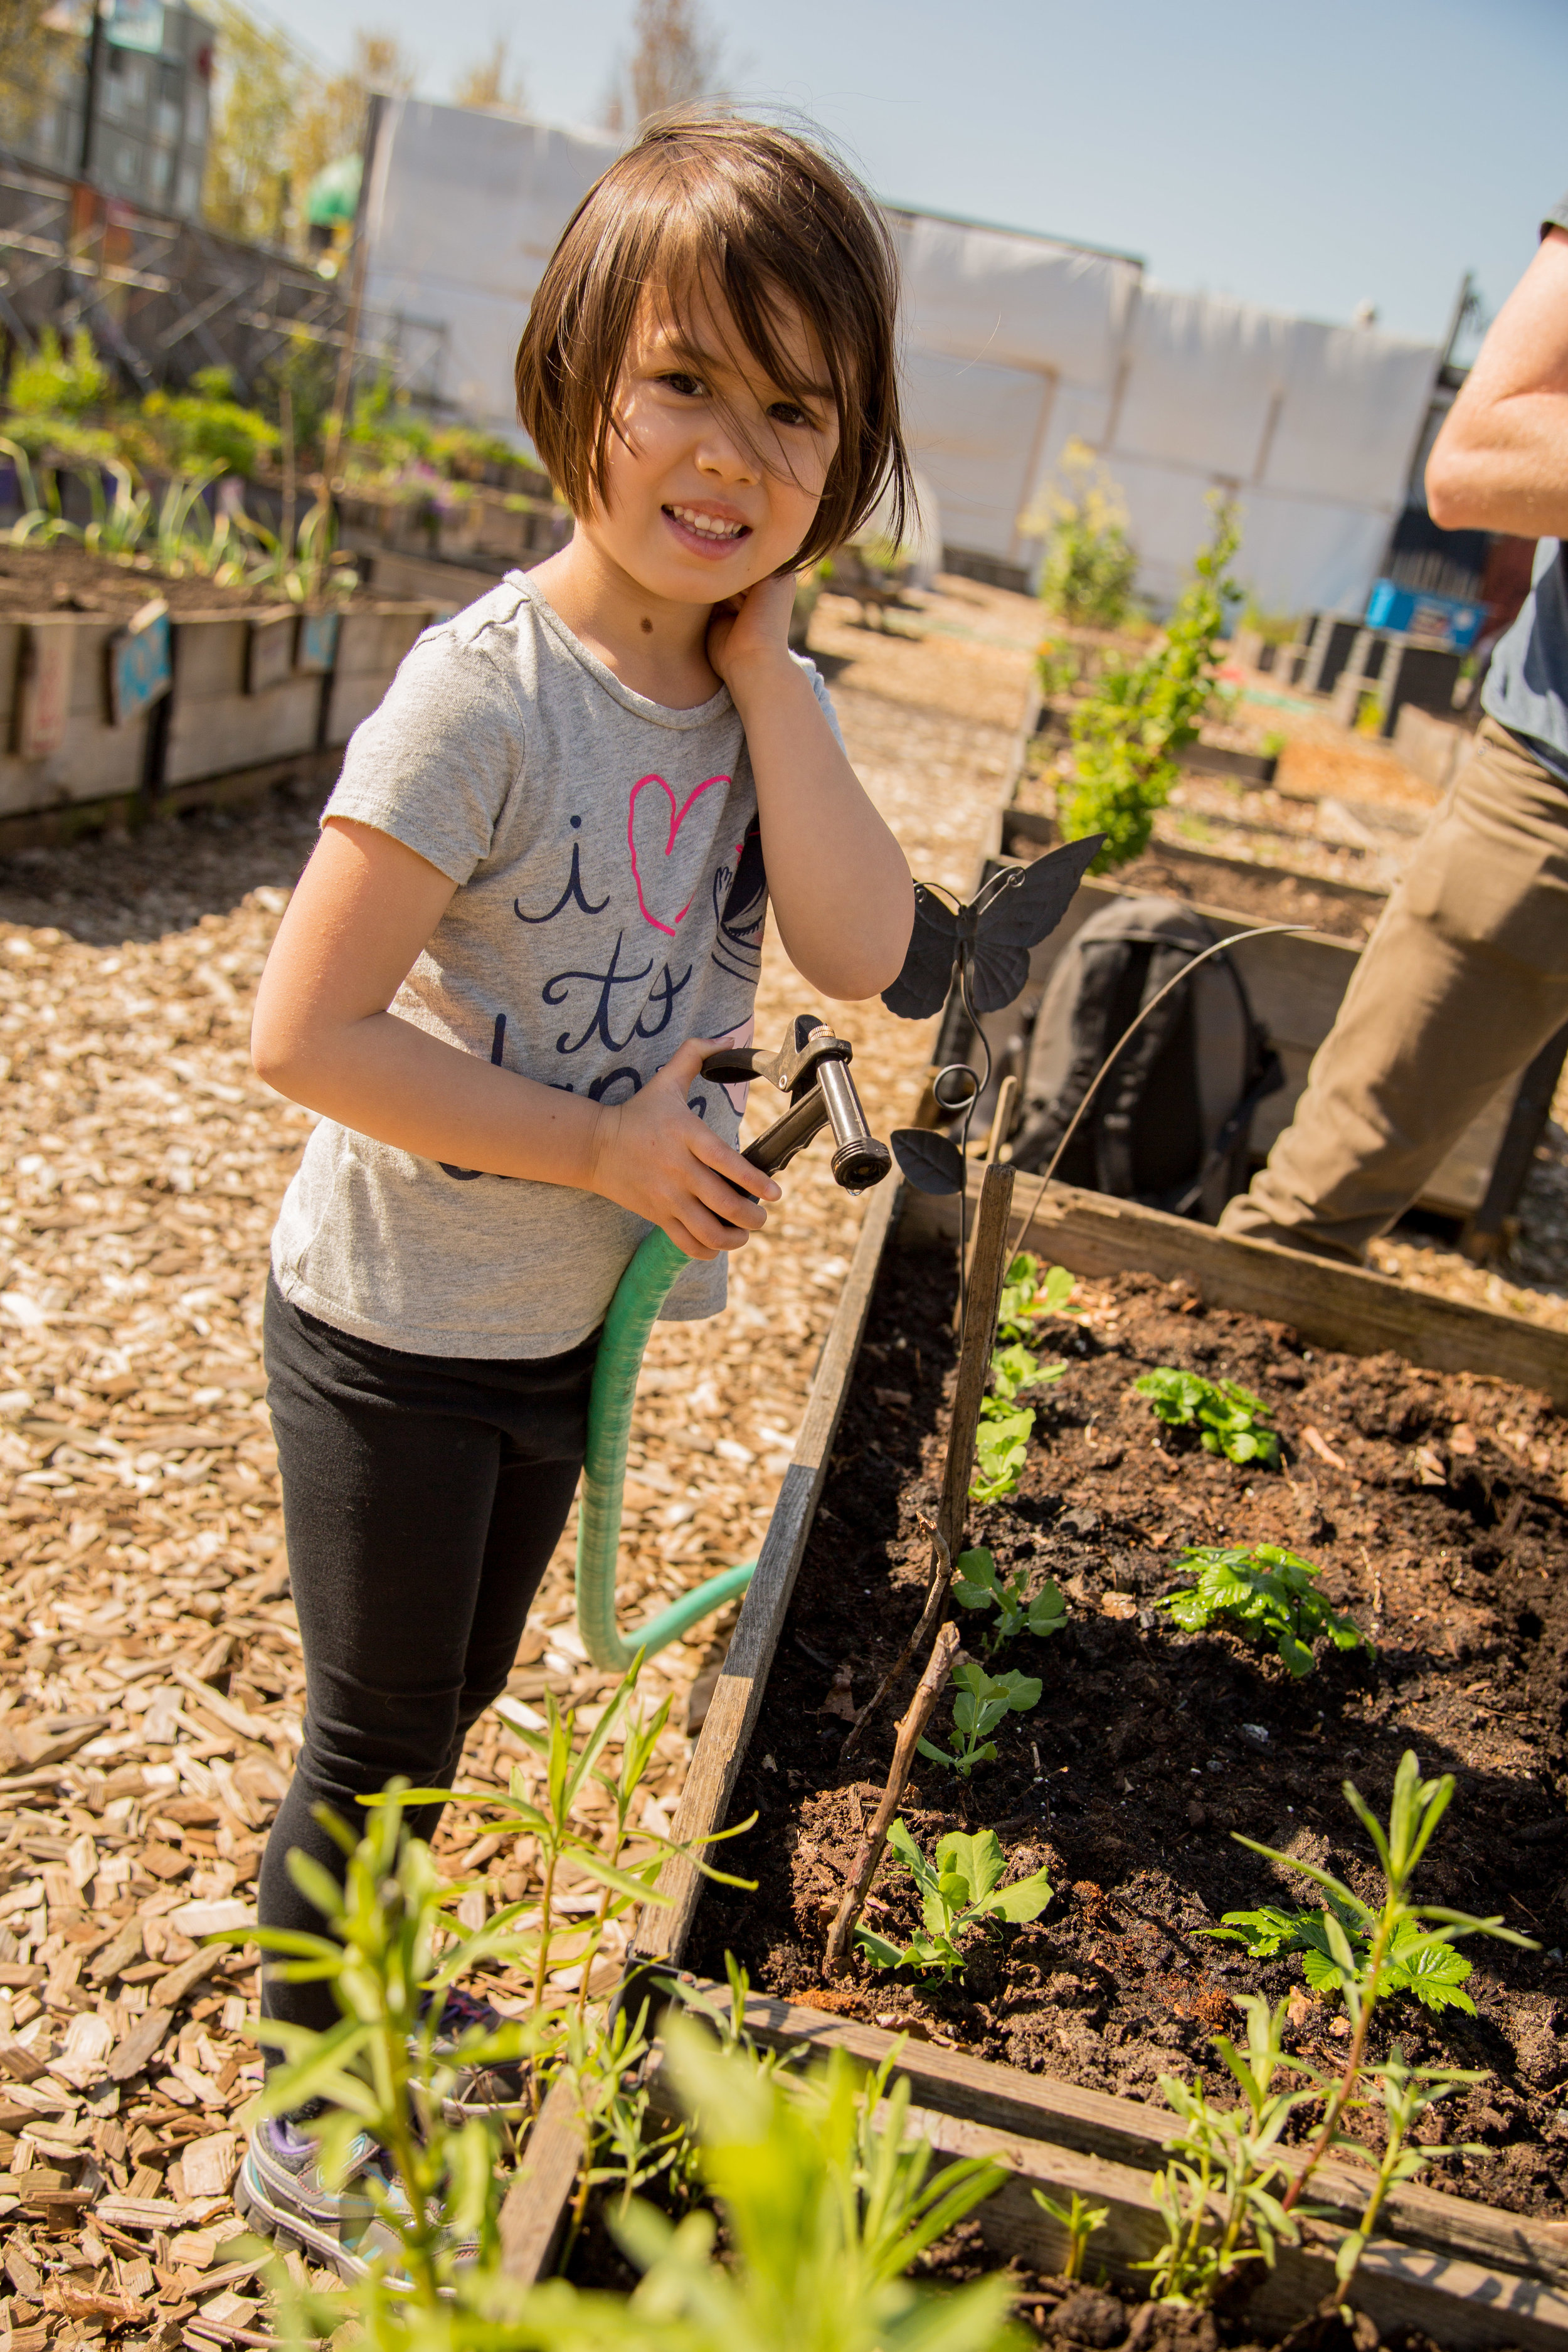 Raised_Garden_Bed_Hastings_North_Temporary_Community_Garden_04.2016_Shifting_Growth_45.jpg